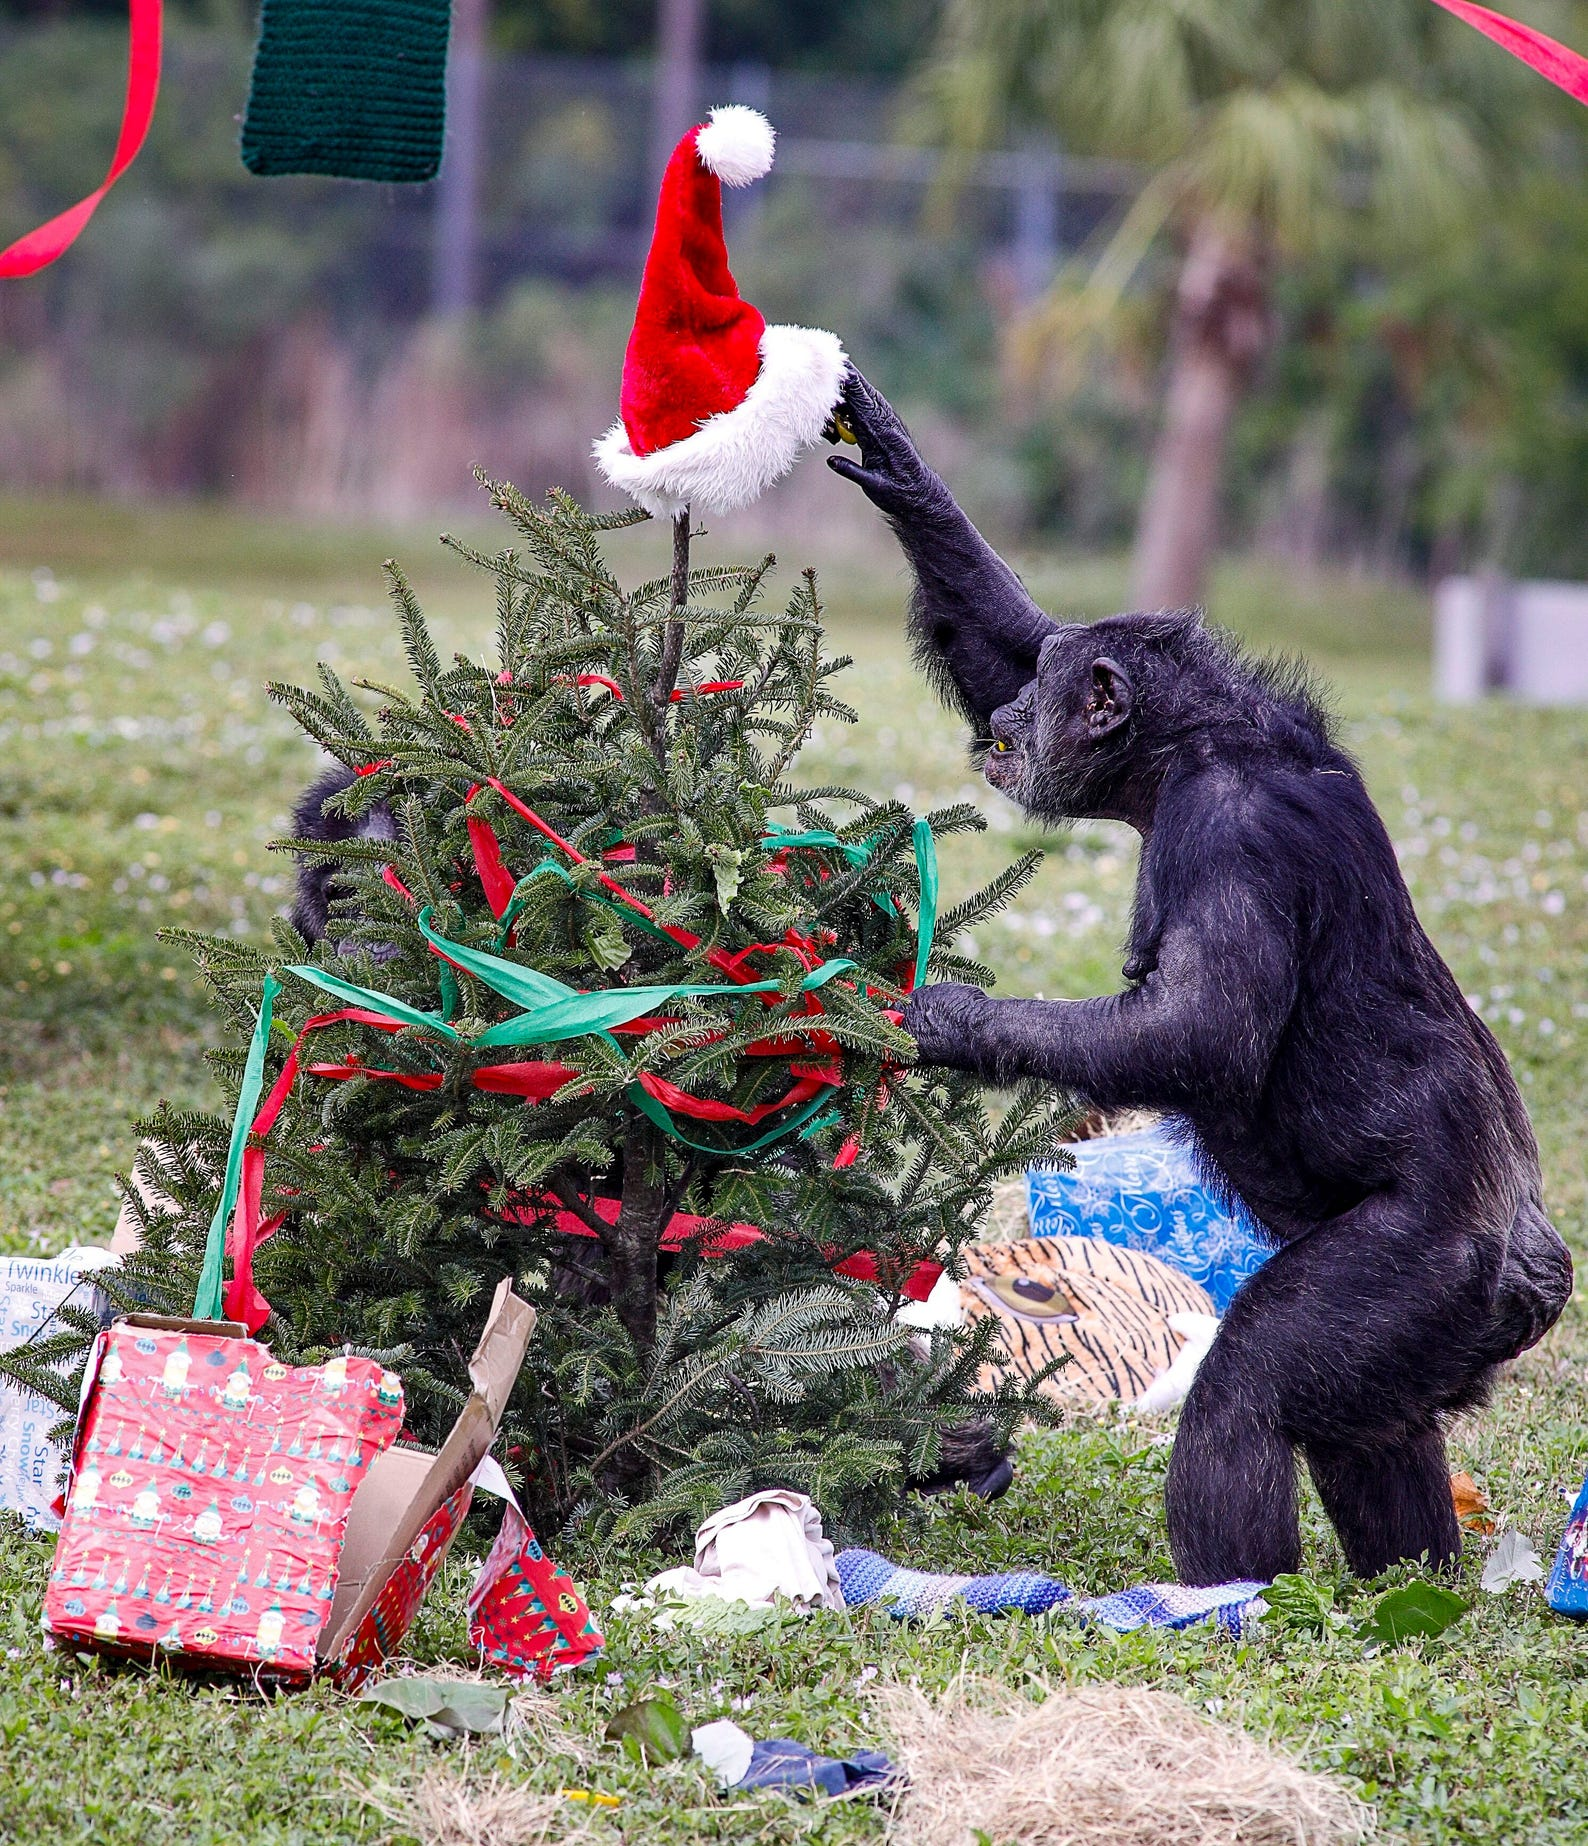 "A Chimpanzee at Lion Country Safari reaches for a Santa Claus hat on top of a Christmas tree while he and his fellow chimps open Christmas presents Thursday, Dec. 17, 2020. Park officials said that while the event is a celebration it also serves as enrichment for the chimps. ""It keeps them stimulated, moving around, and foraging, which is really important for their mental and physical well-being,"" said Haley Passeser, public relations specialist at the park."